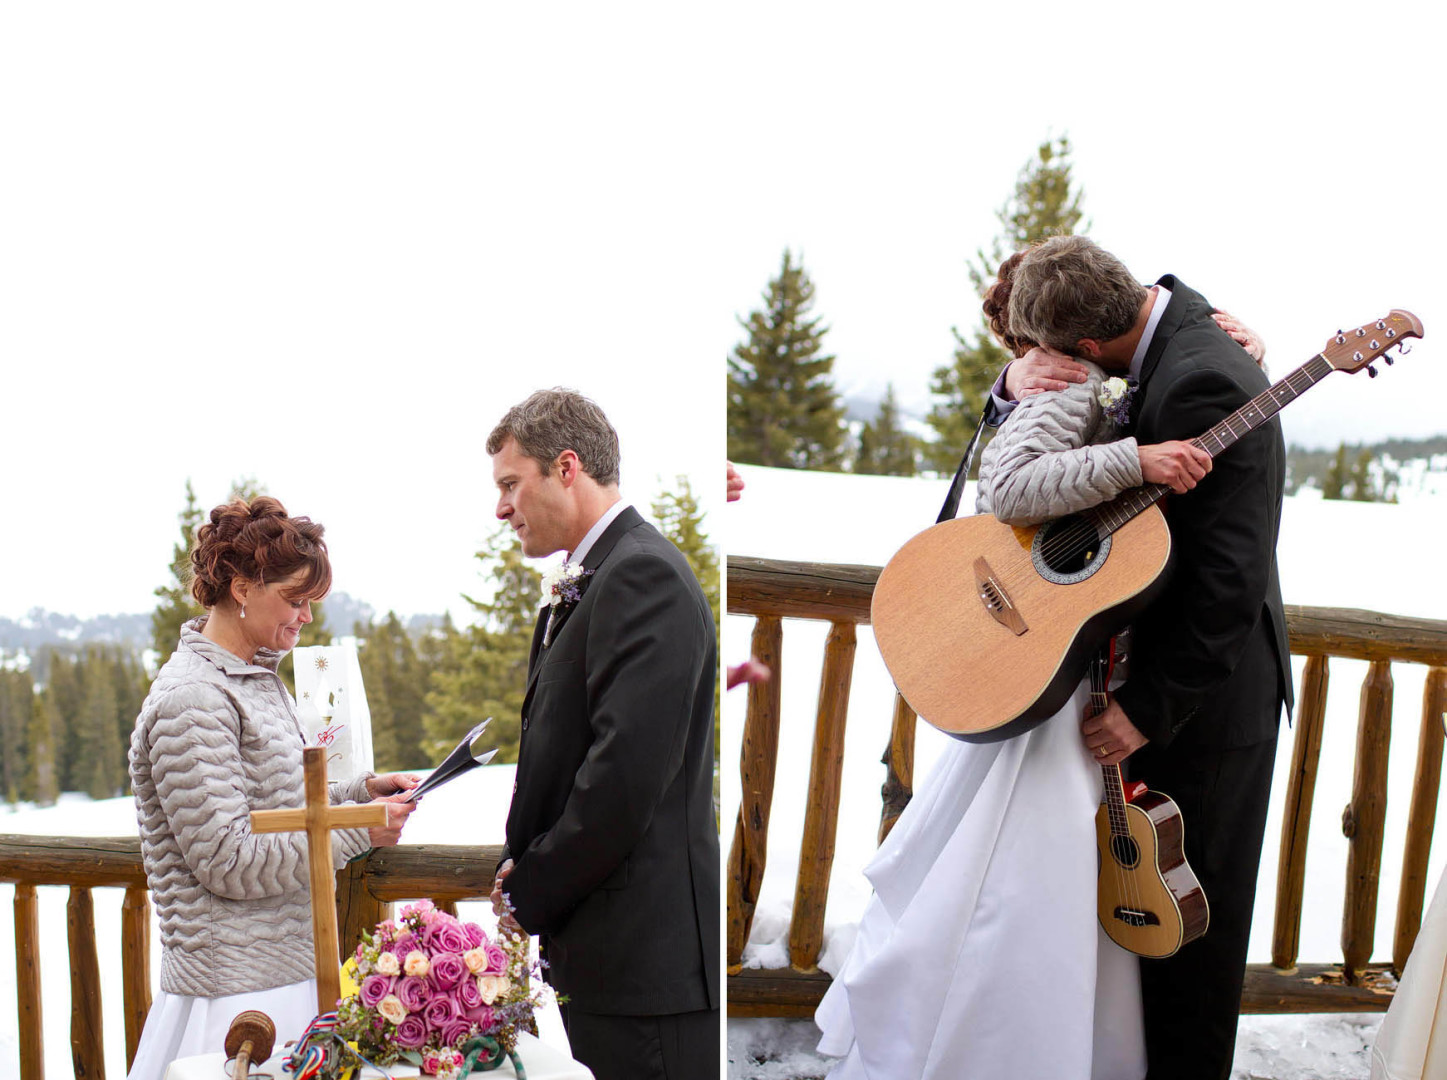 Vail Colorado Spring Wedding, Desiree Mostad, Wedding Photographer, Vows, Shrine Mountain, Bryllup fotograf